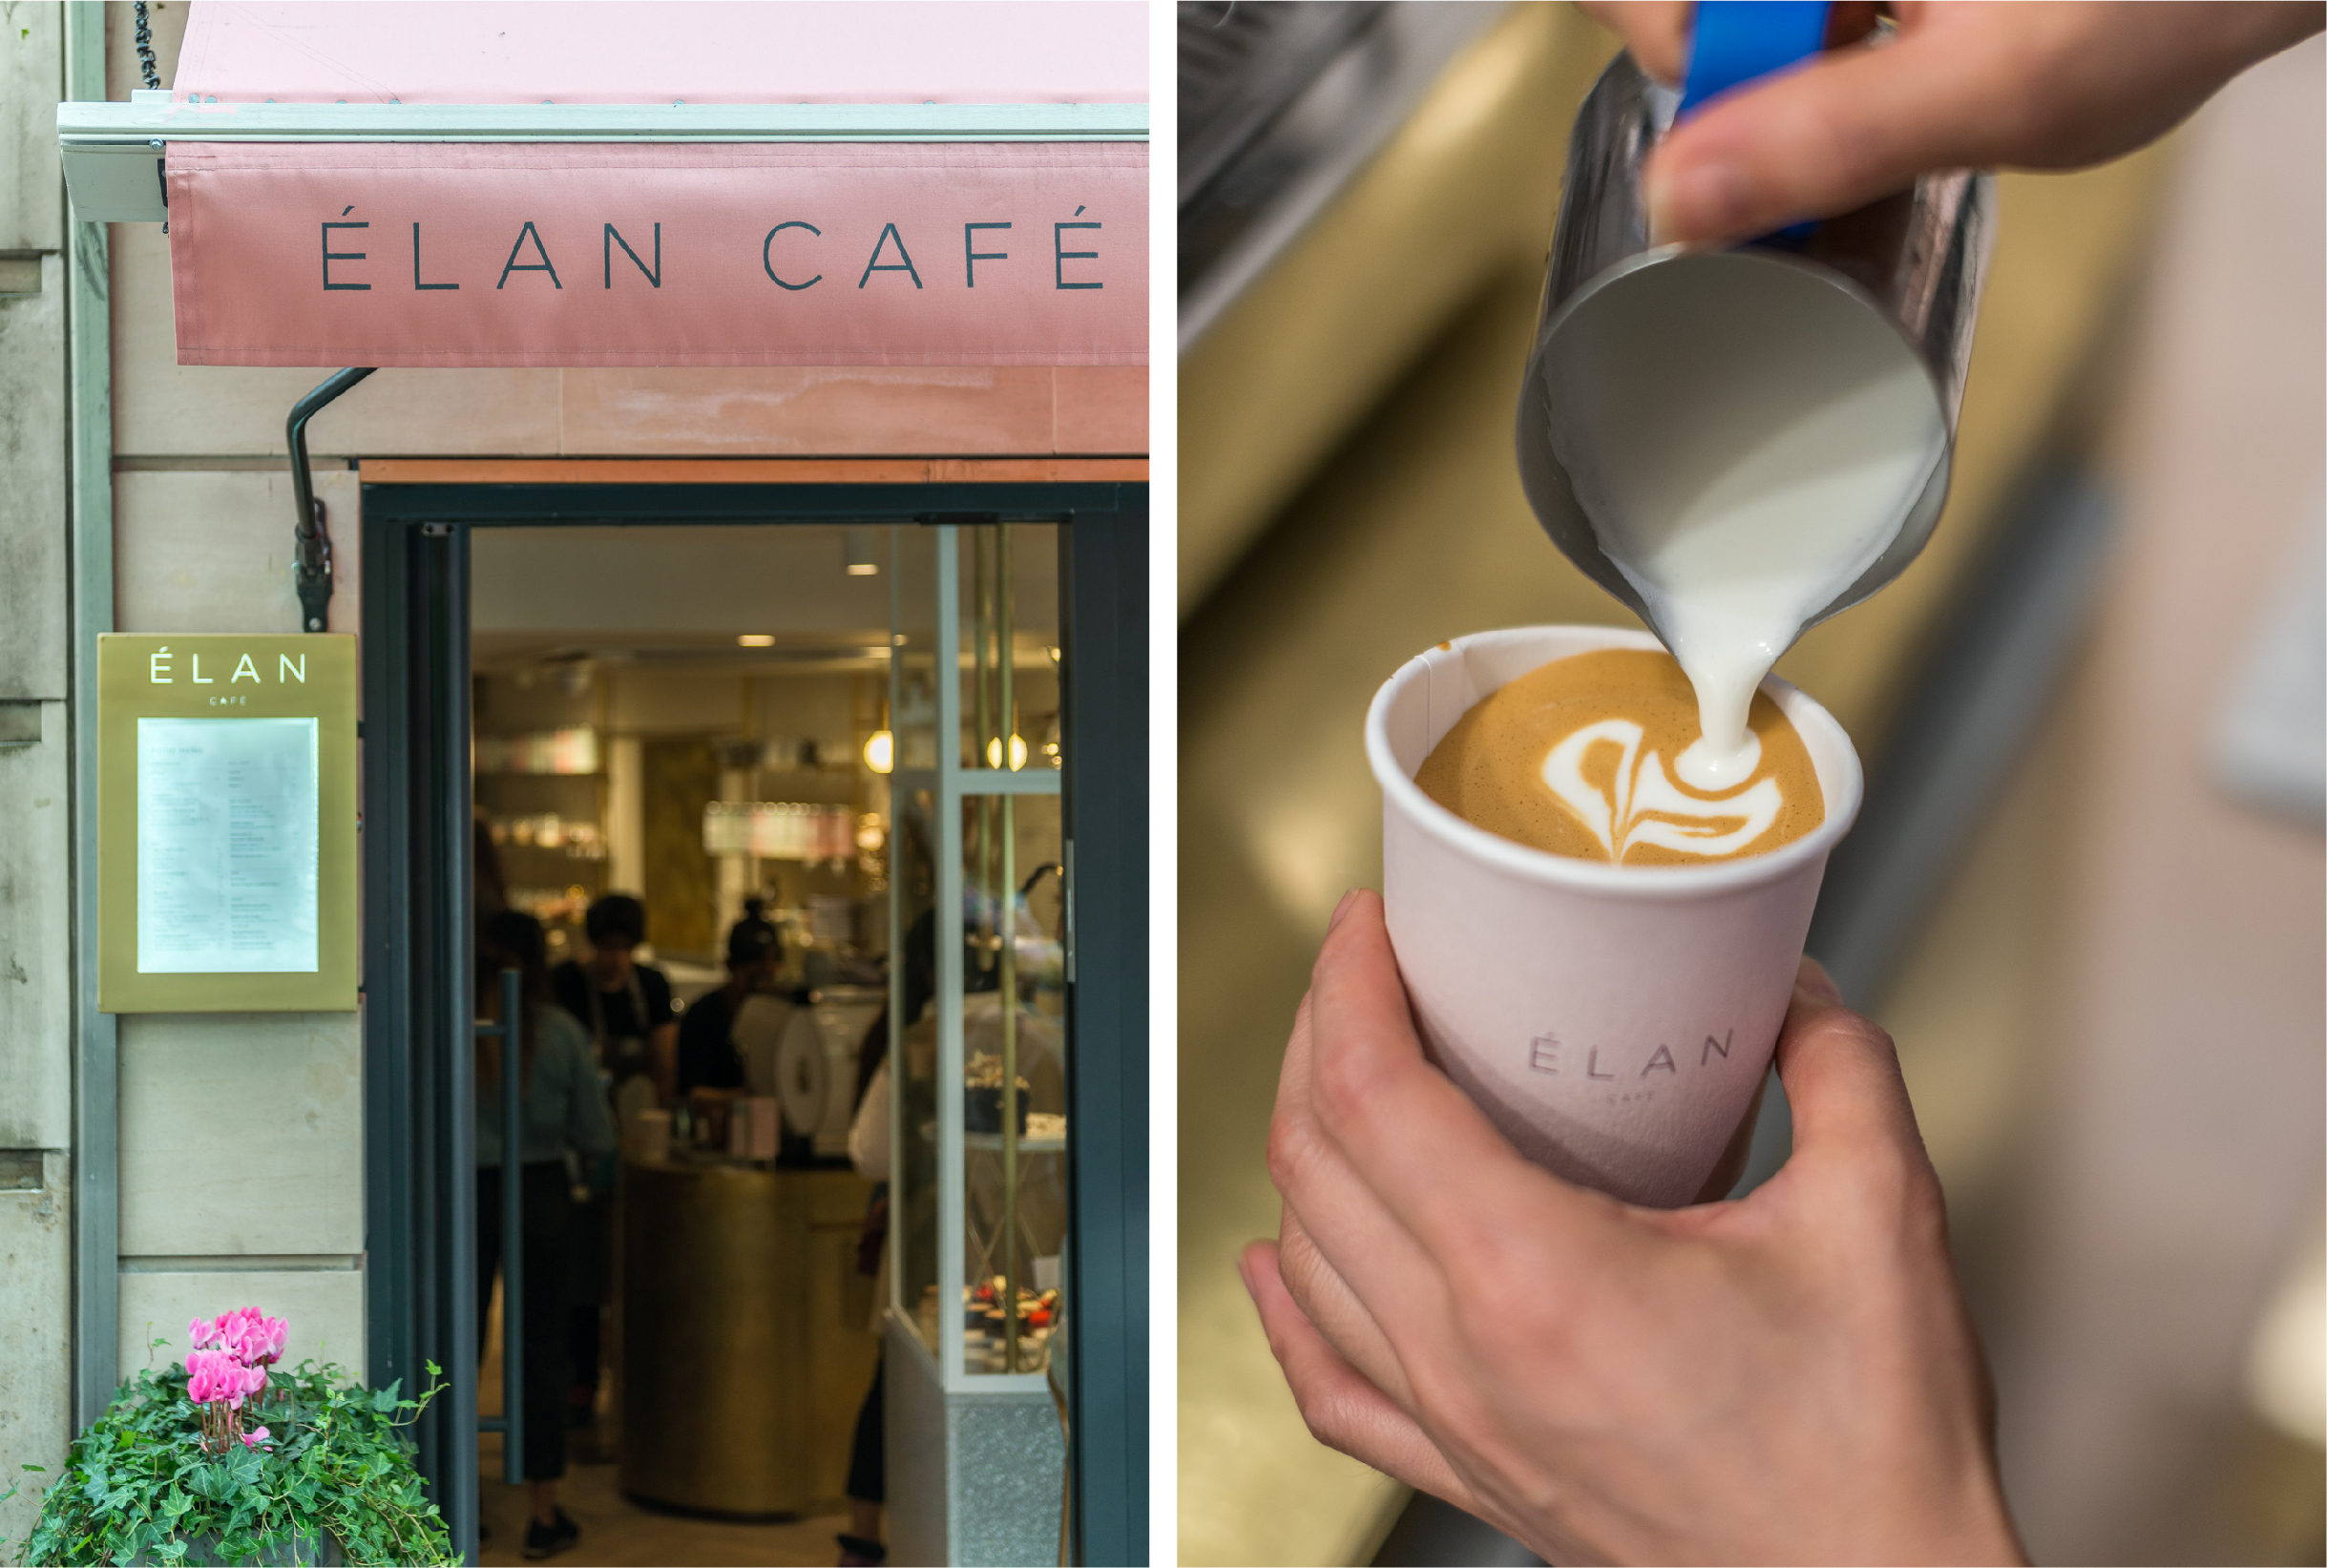 Elan signage and barista pouring milk into a branded coffee cup